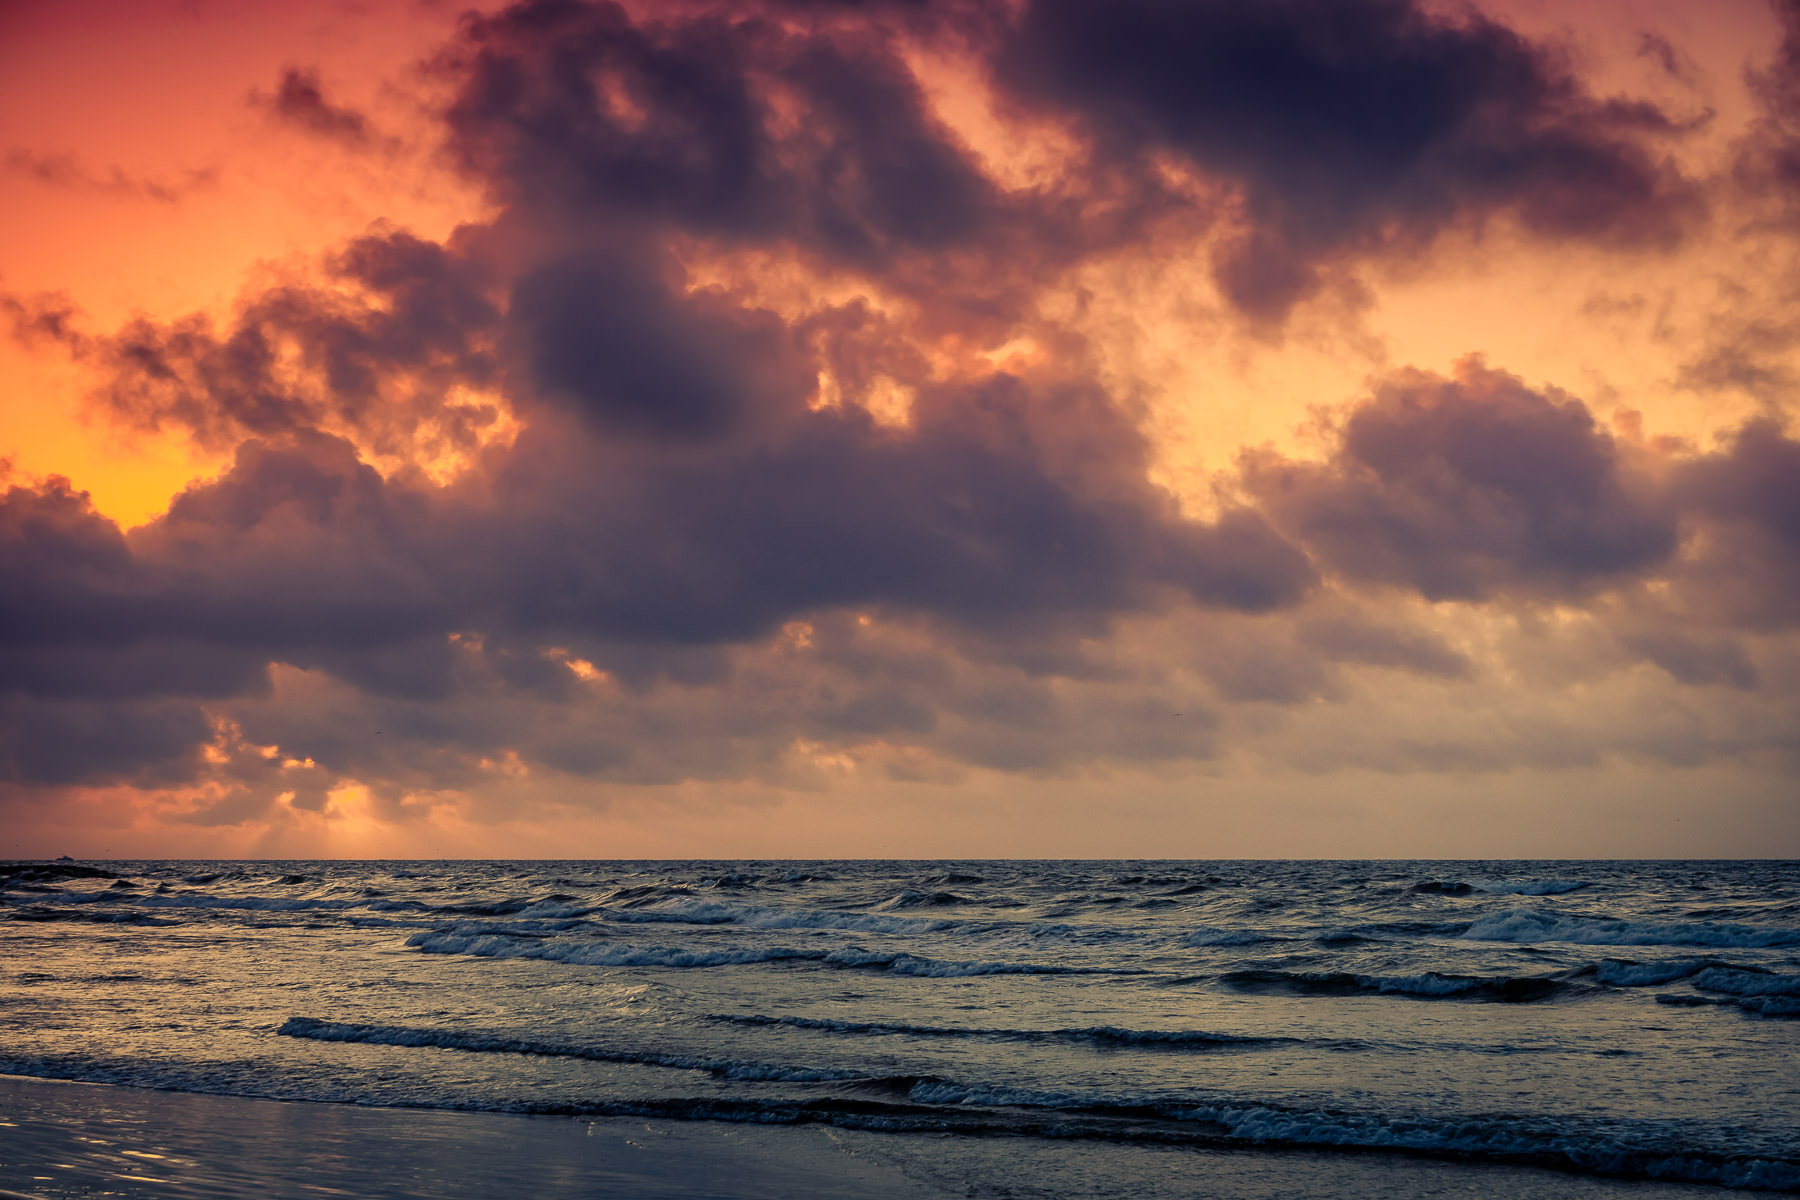 A morning red sky over the Gulf of Mexico off the coast of Galveston, Texas, portends bad weather according to an old mariner's rhyme.